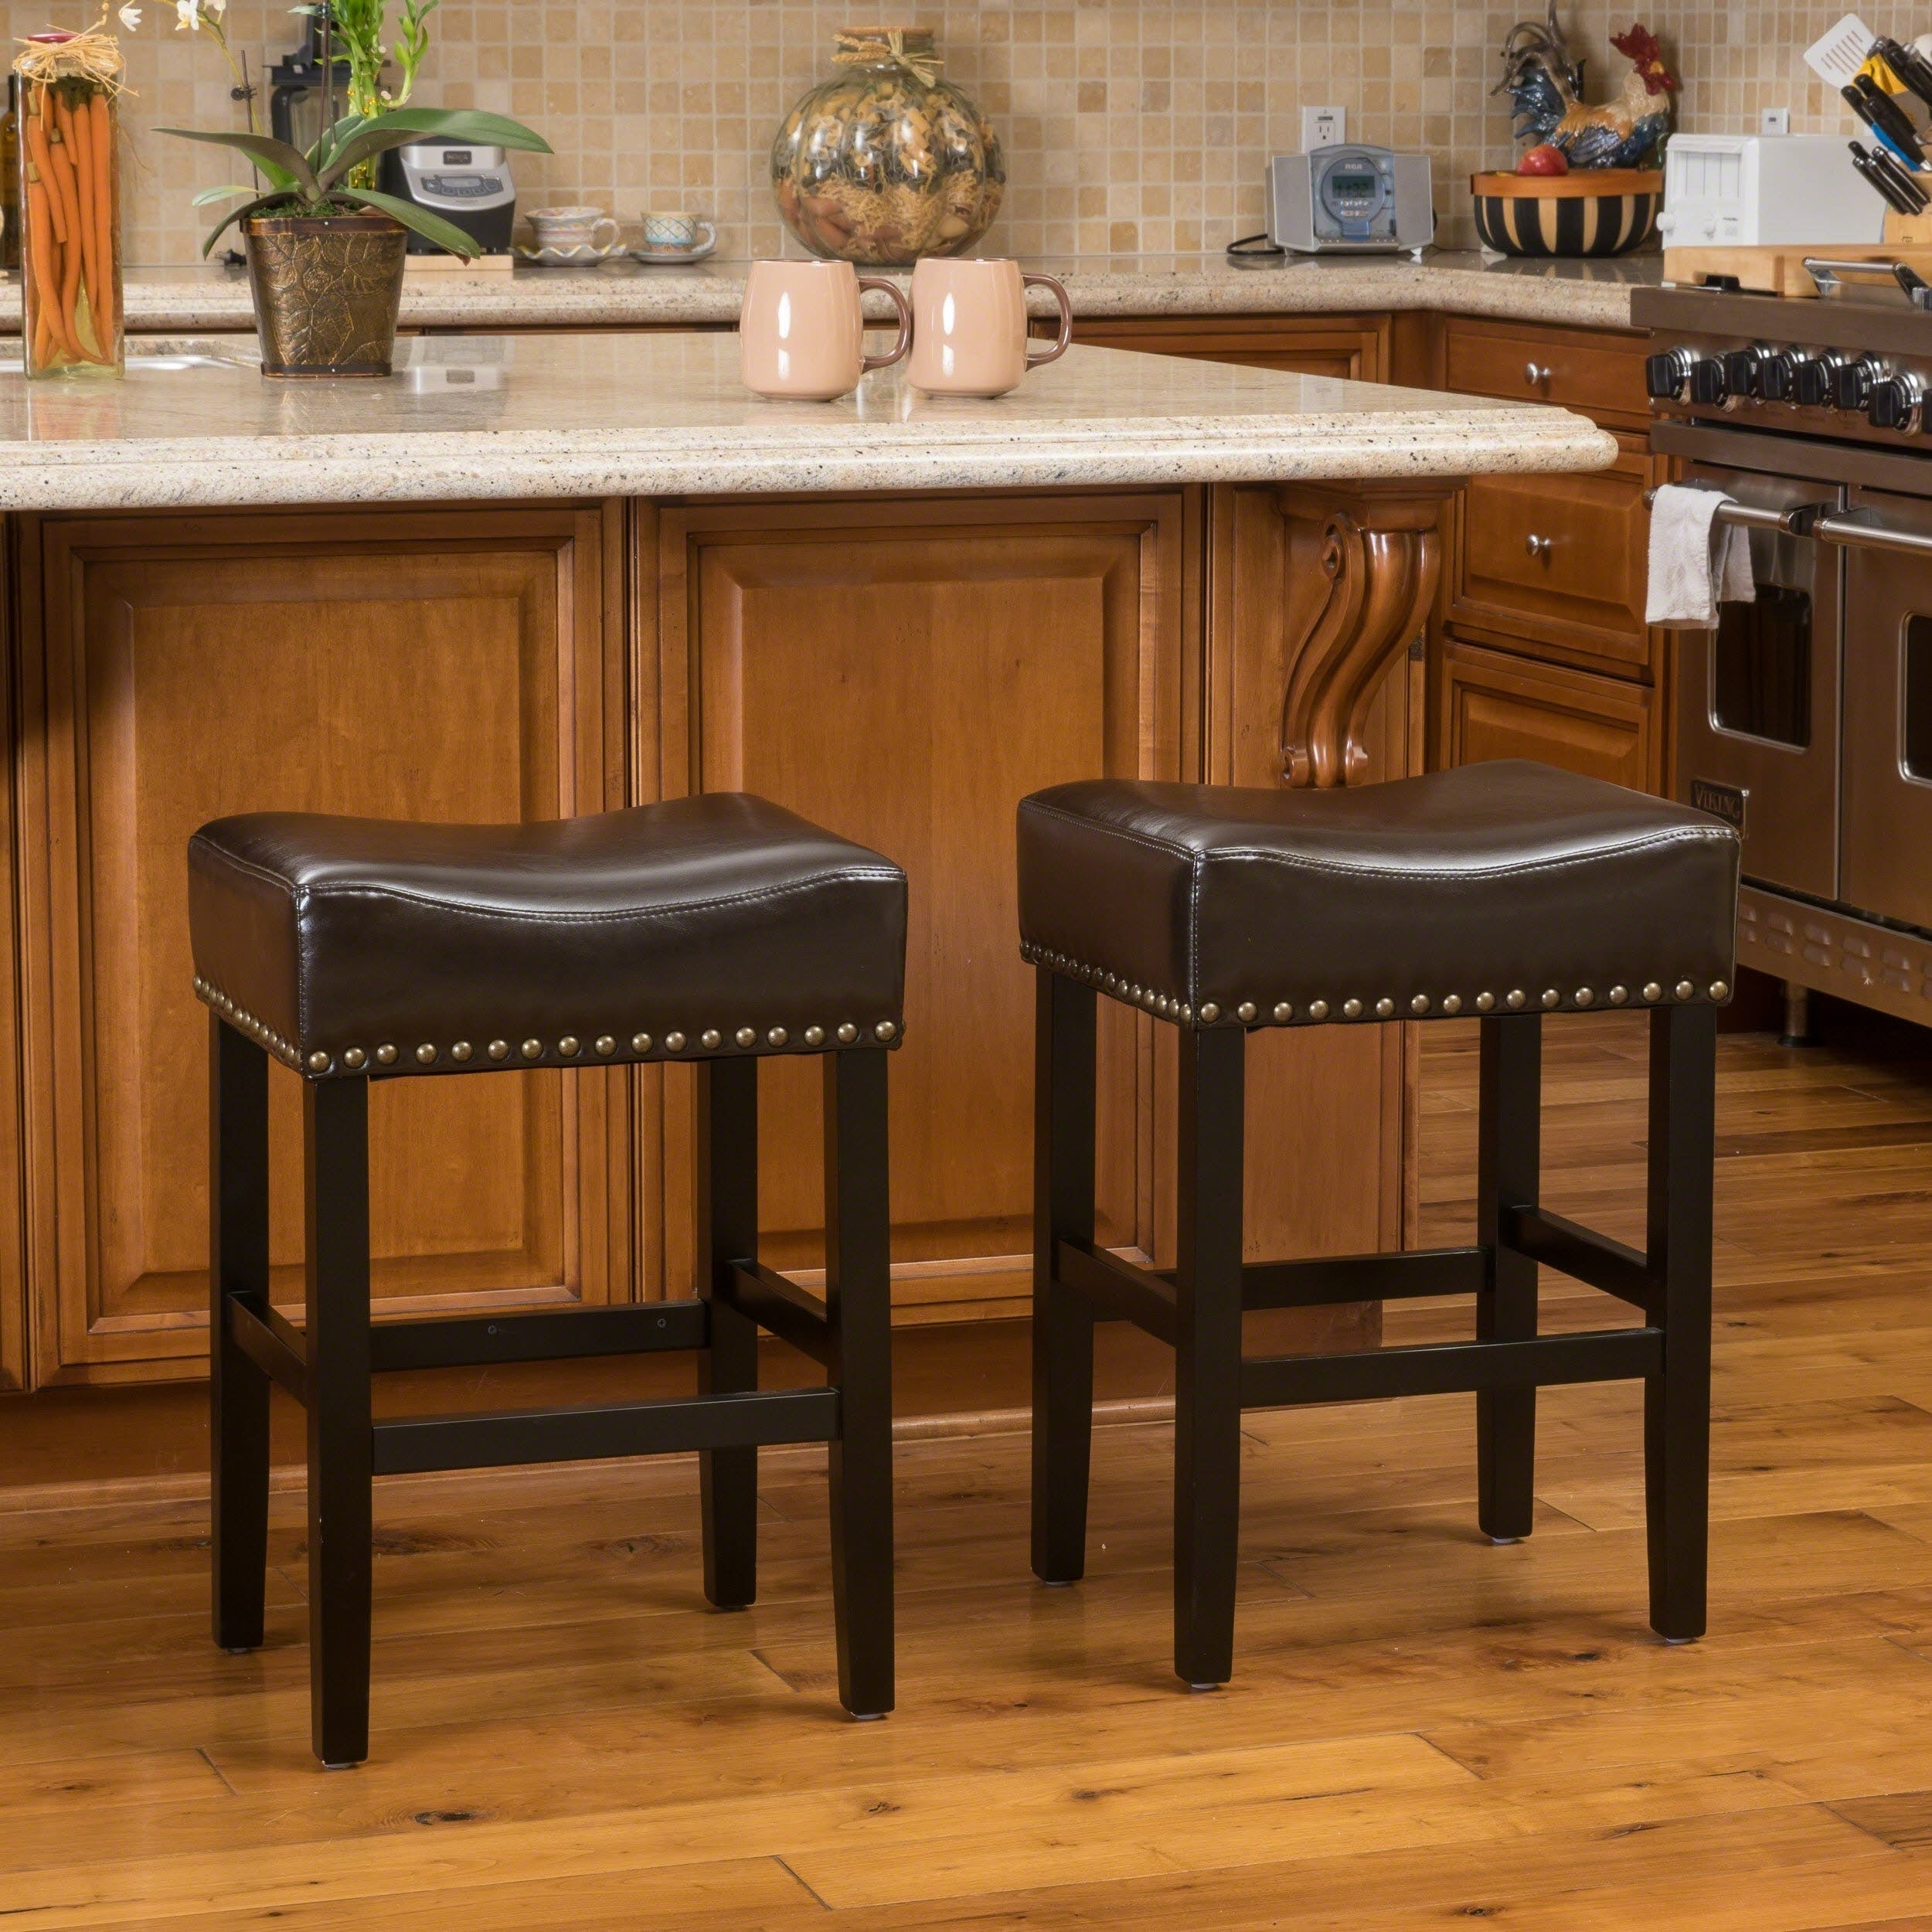 Admirable Buy Set Of 2 Counter Bar Stools Online At Overstock Our Creativecarmelina Interior Chair Design Creativecarmelinacom